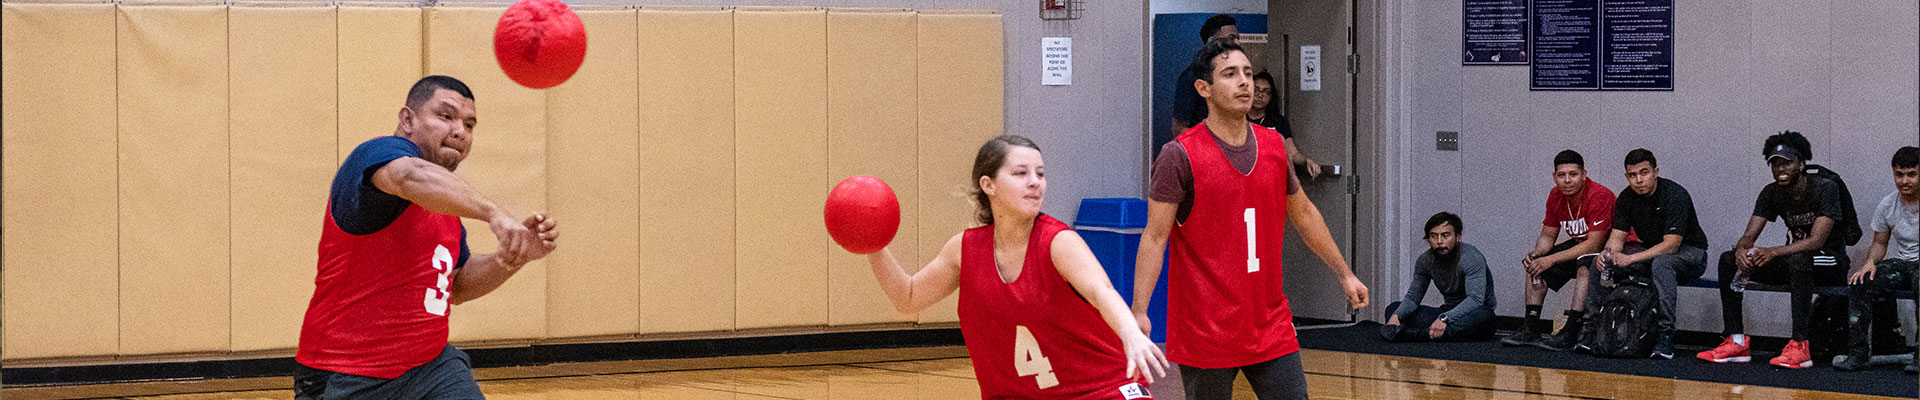 image of dodgeball player